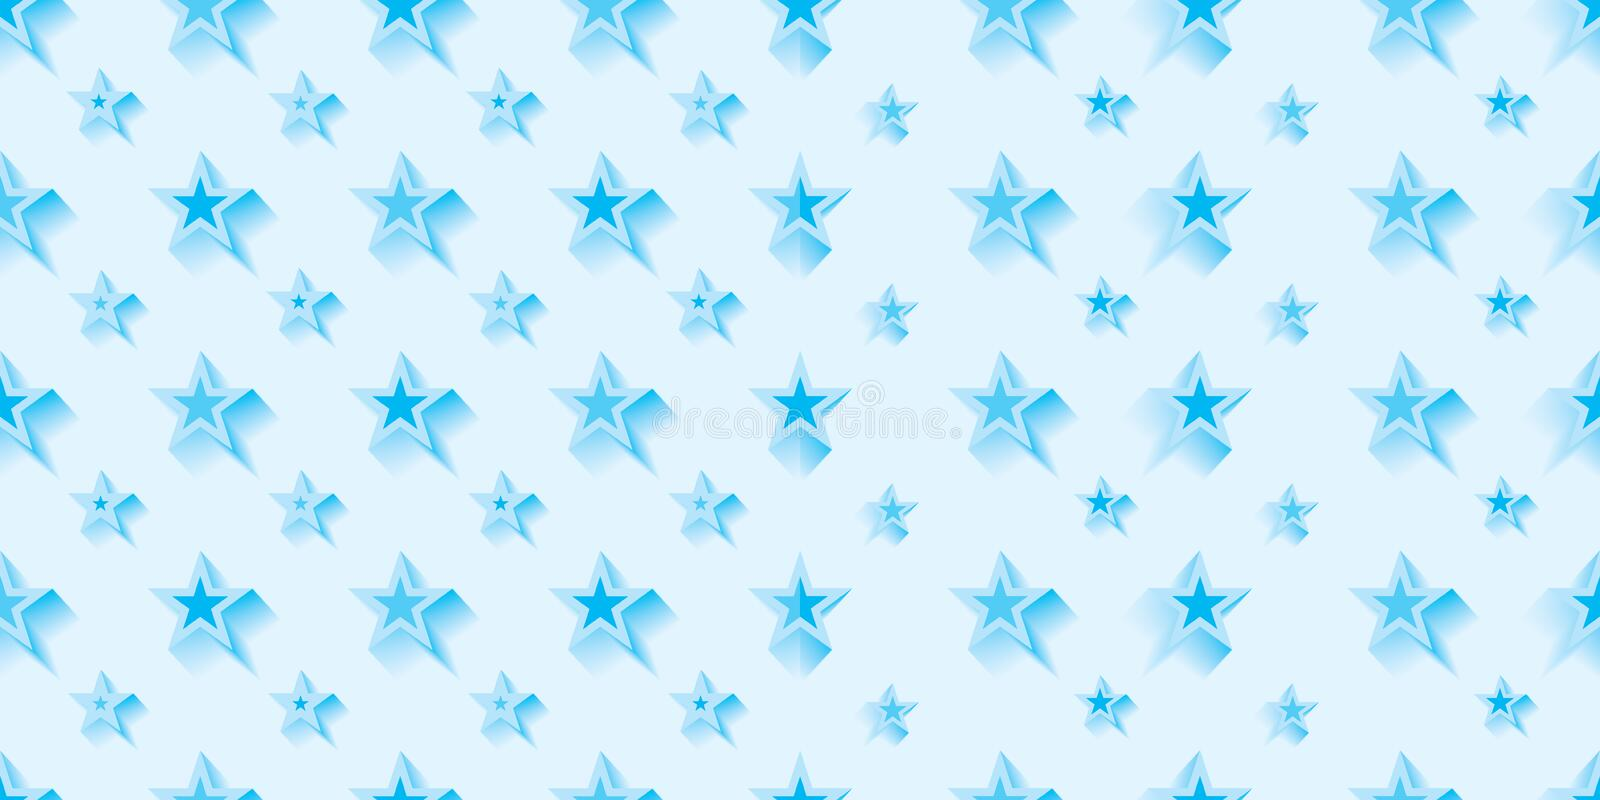 Star cold blue symmetry combine seamless pattern stock illustration